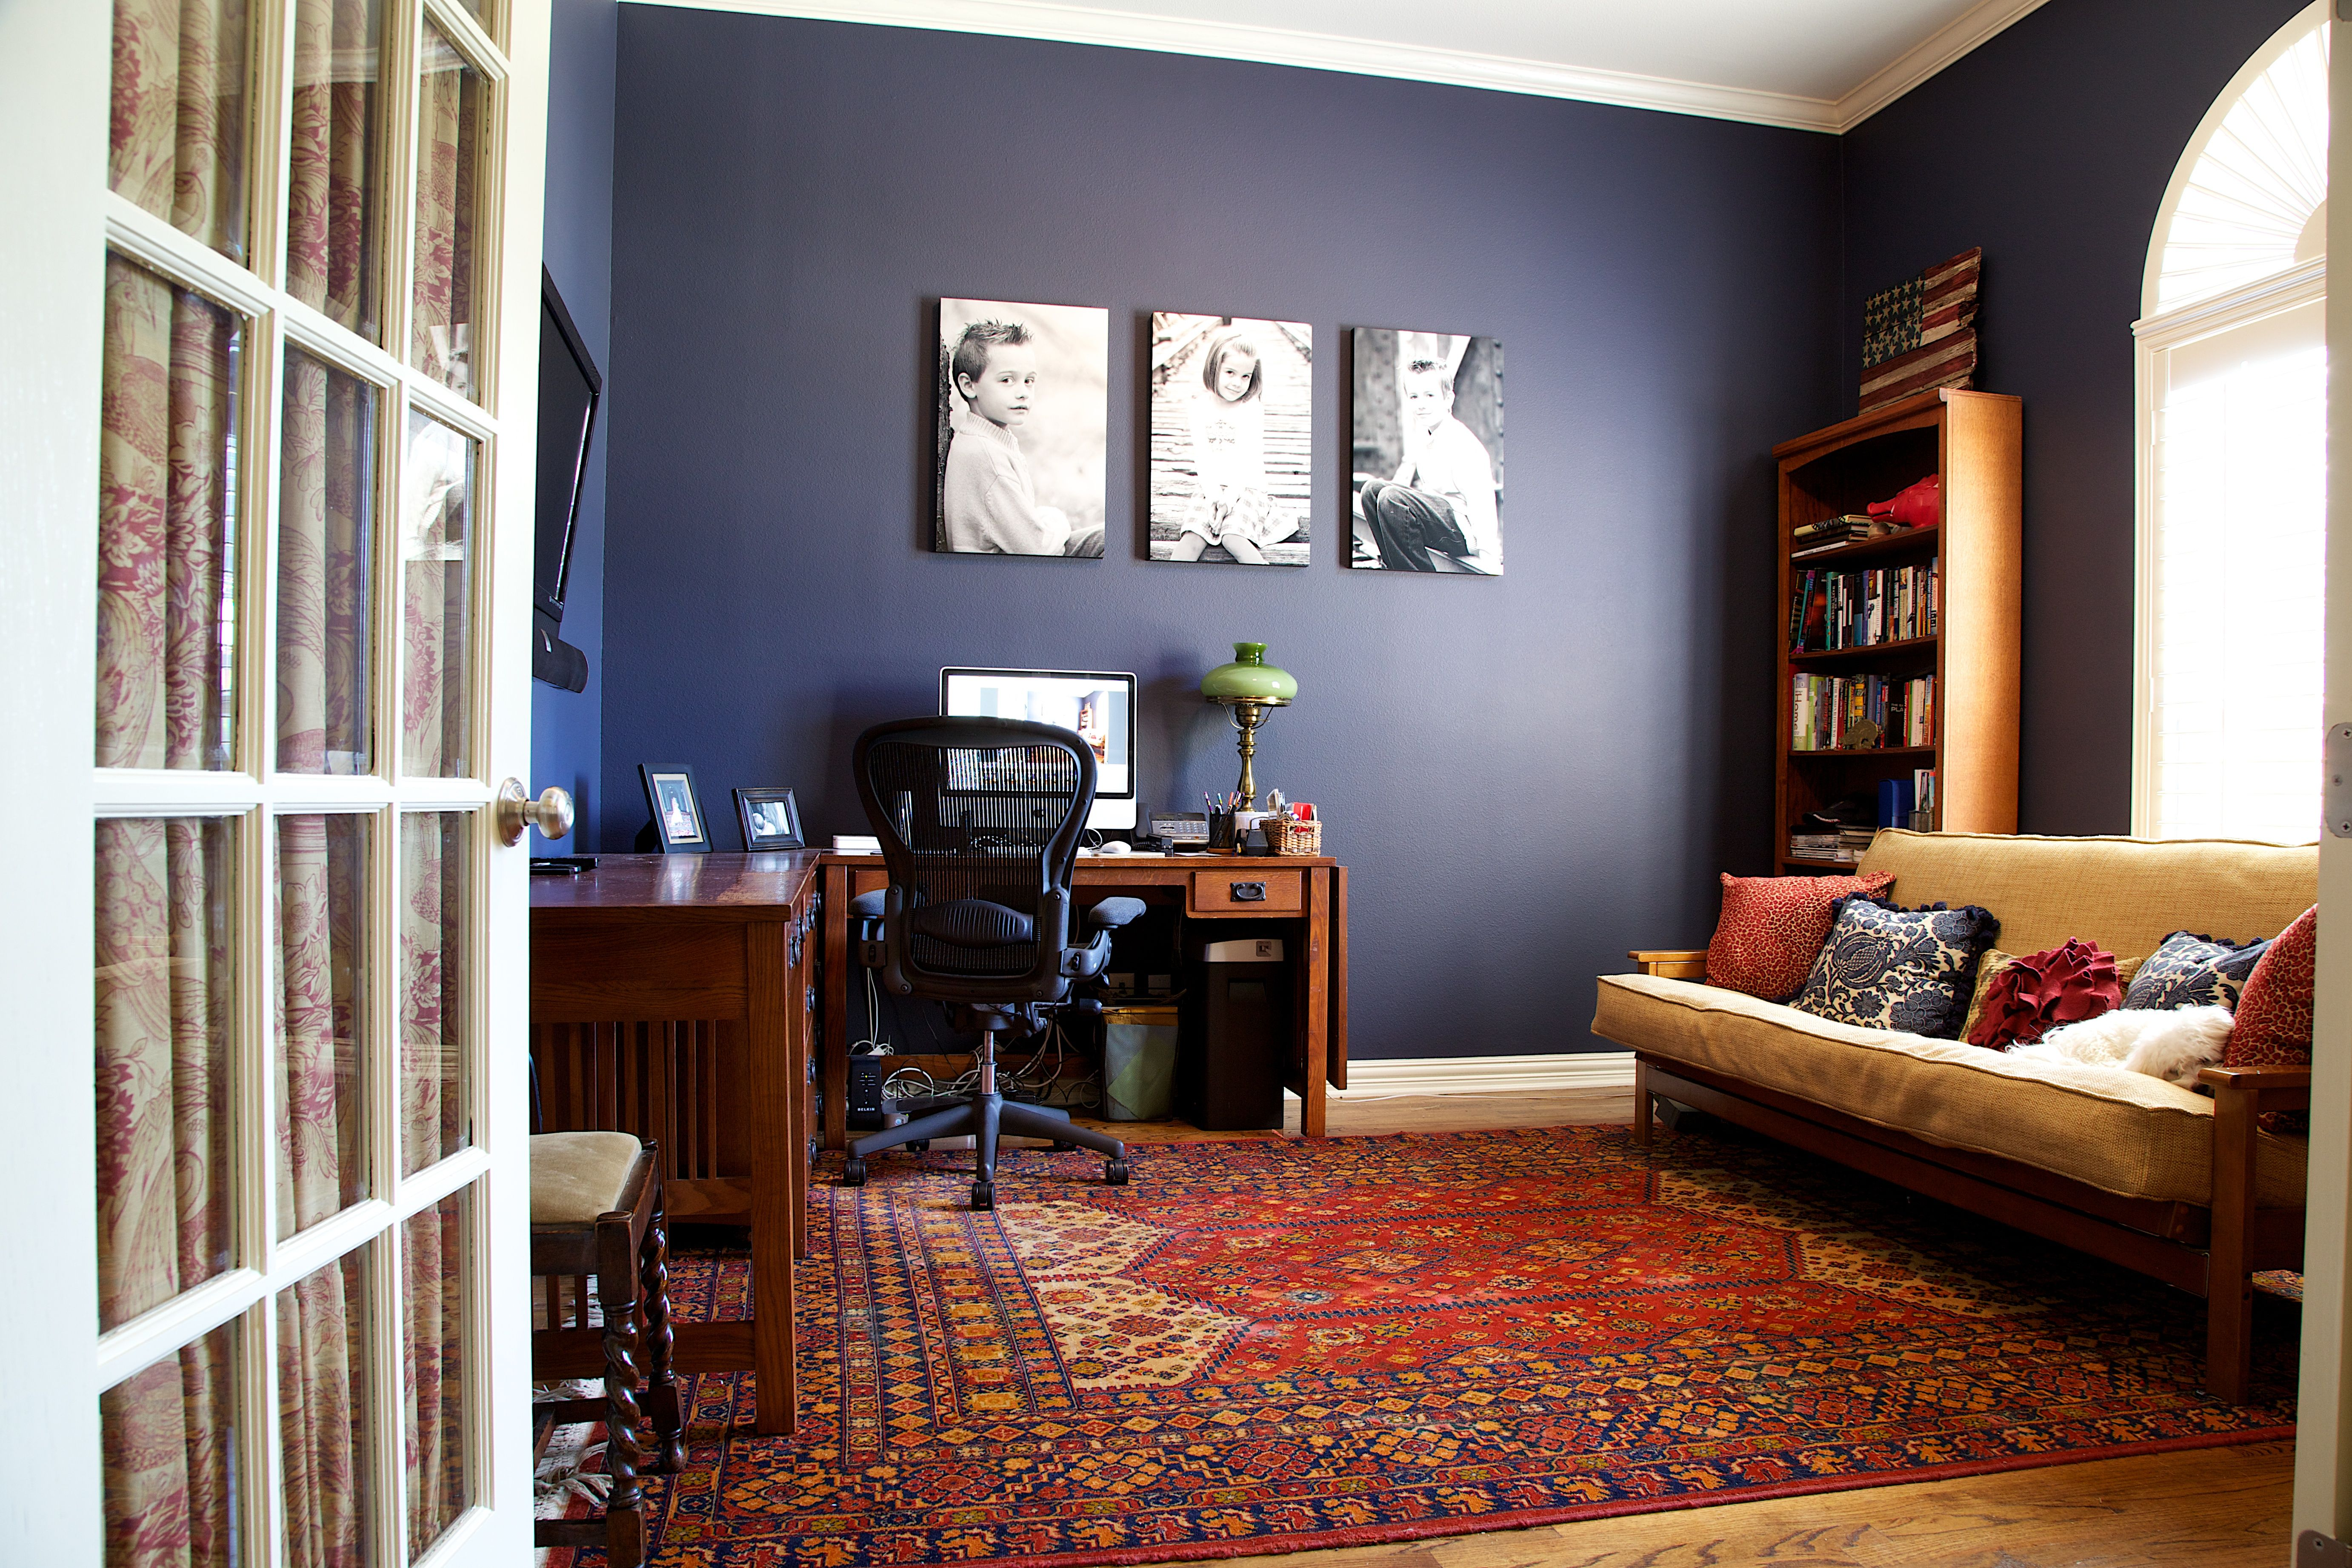 Benjamin Moore Hale Navy | Paint colors for living room ...